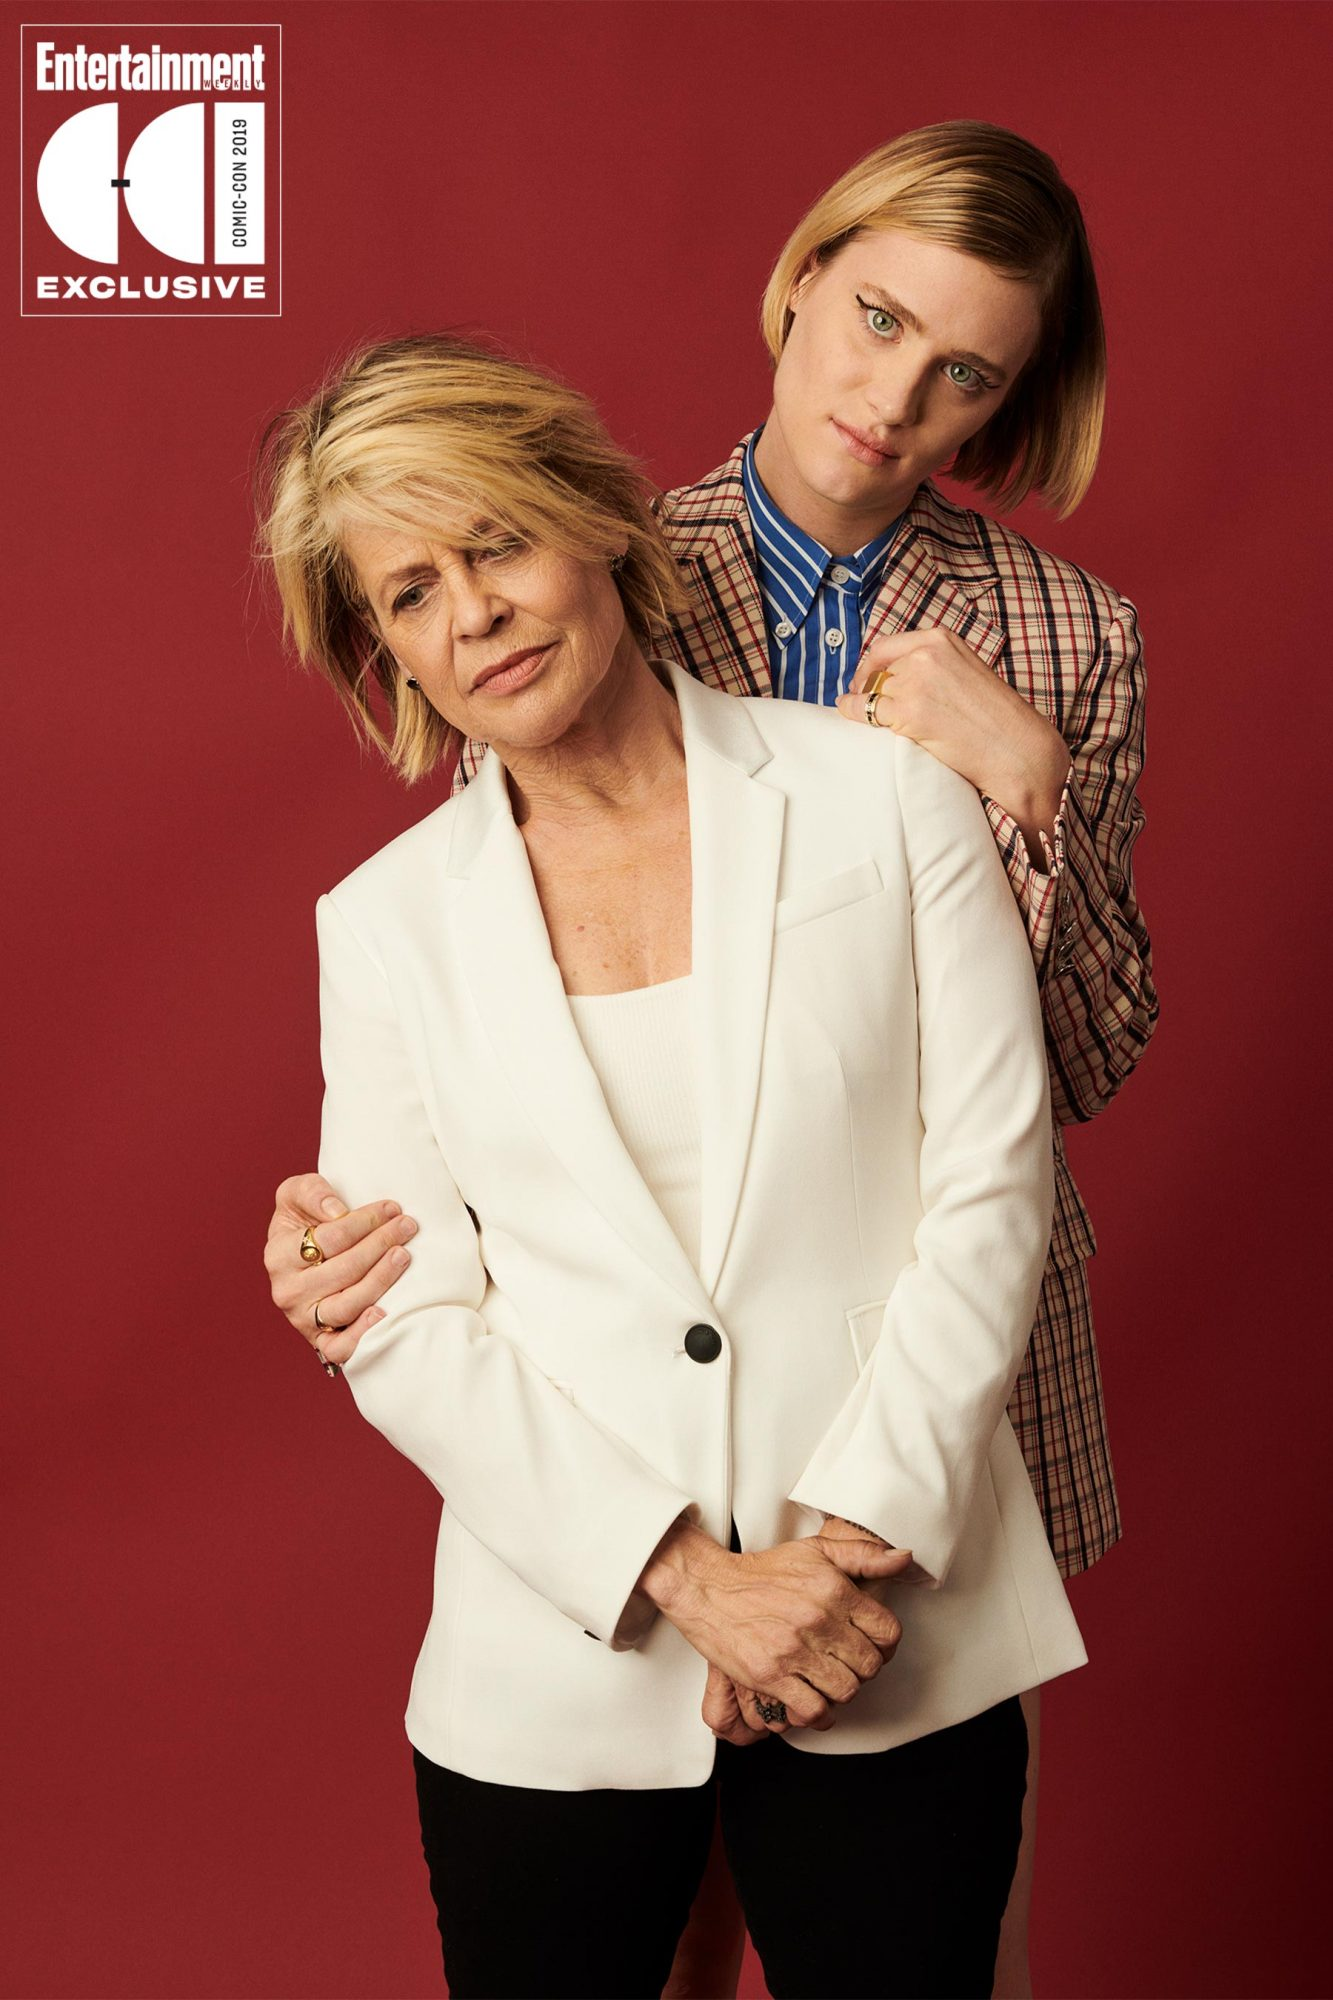 Day 1 - 2019 SDCC - San Diego Comic-con Linda Hamilton and Mackenzie Davis photographed in the Entertainment Weekly portrait studio during the 2019 San Diego Comic Con on July 18th, 2019 in San Diego, California. Photographed by: Eric Ray Davidson Pictured: Linda Hamilton and Mackenzie Davis Film/Show: Terminator: Dark Fate